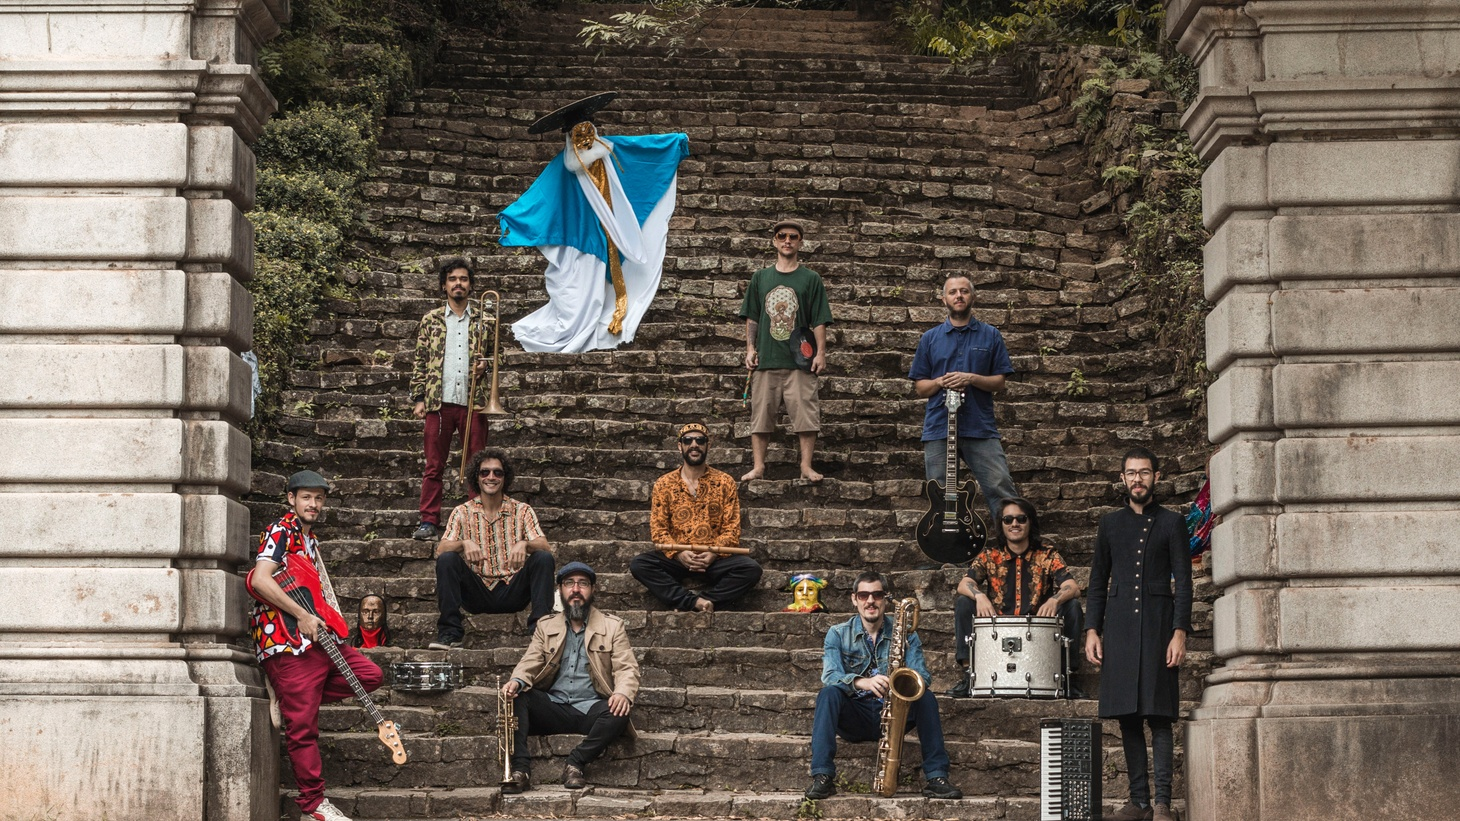 From the heart of the São Paulo's jazz scene, the ten-piece Nomade Orquestra creates a cosmic musical playground where Ethio-jazz, Indian classical and soul swirls around its Brazilian roots.